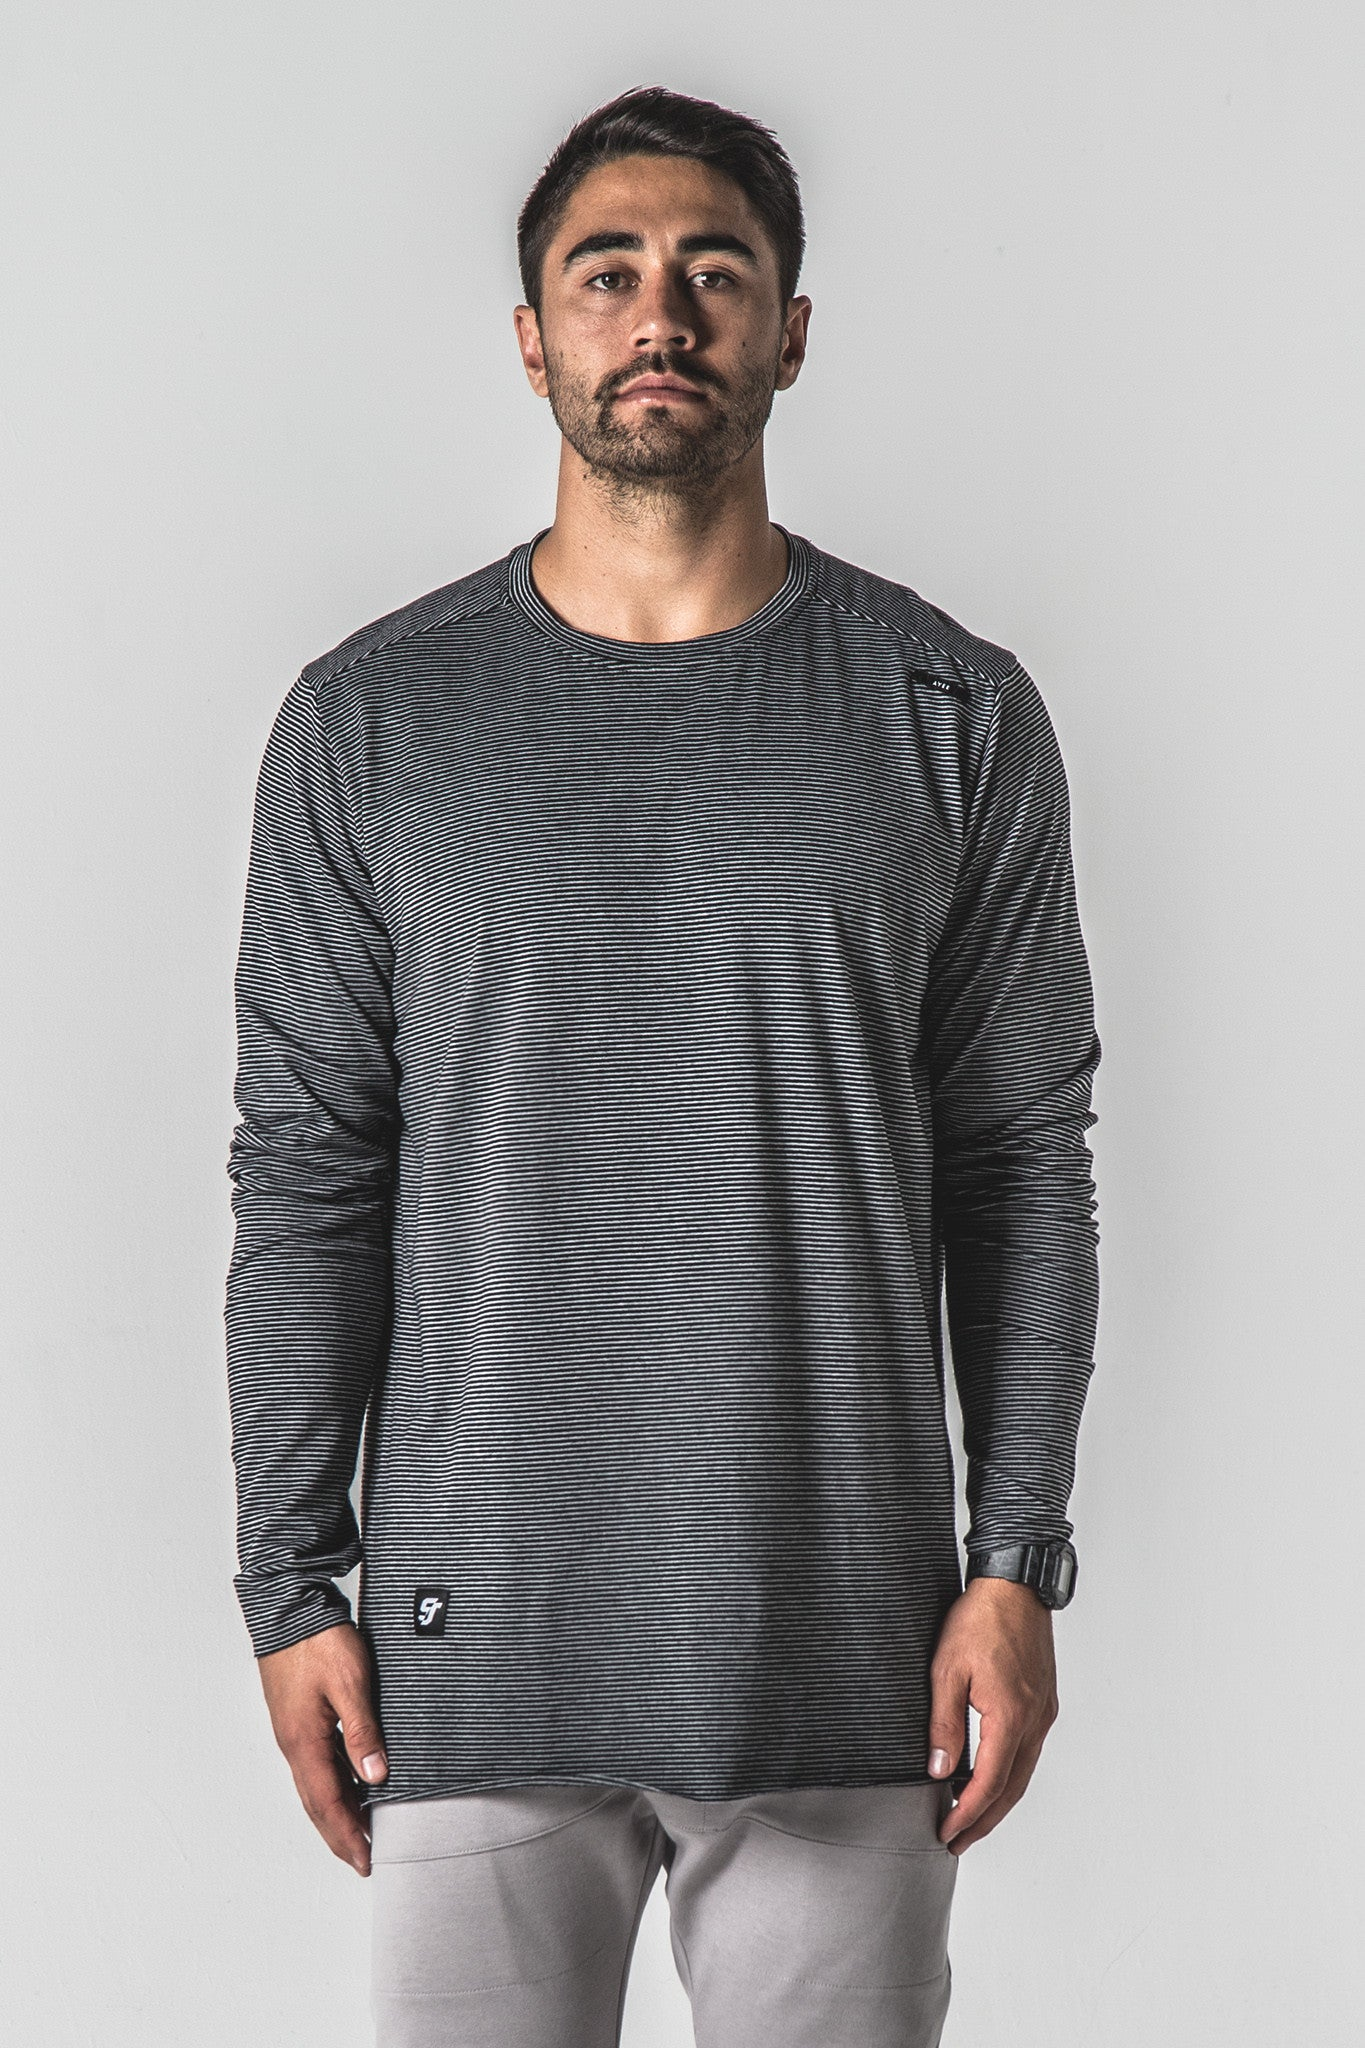 Ka-Nit Long Sleeve - Black/Grey Stripe